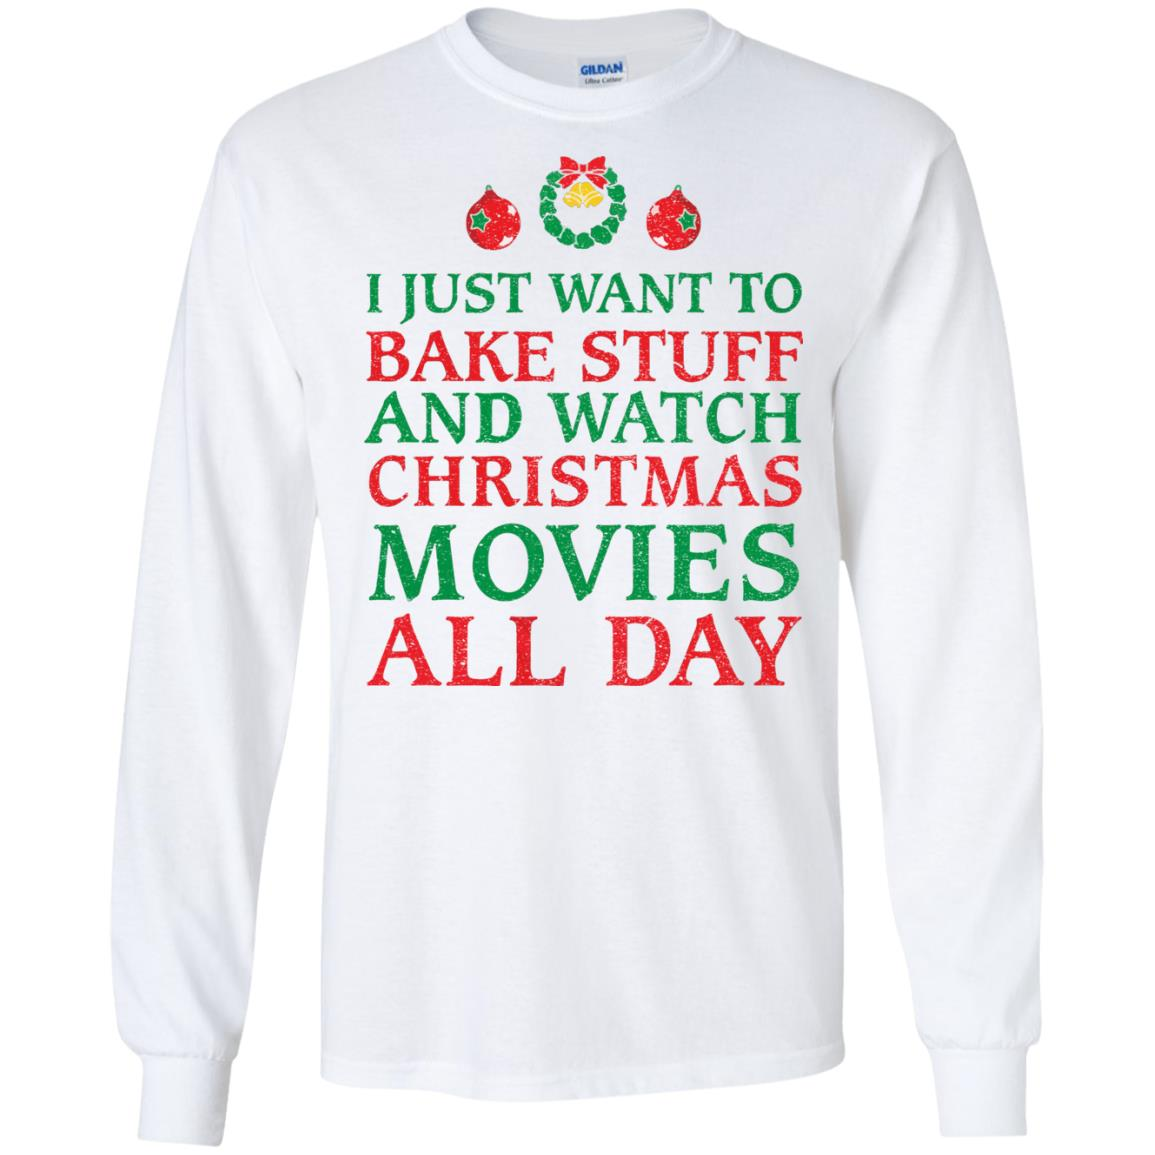 image 2697 - I Just Want to Bake Stuff and Watch Christmas Movie All Day Sweater, Ugly Sweatshirts